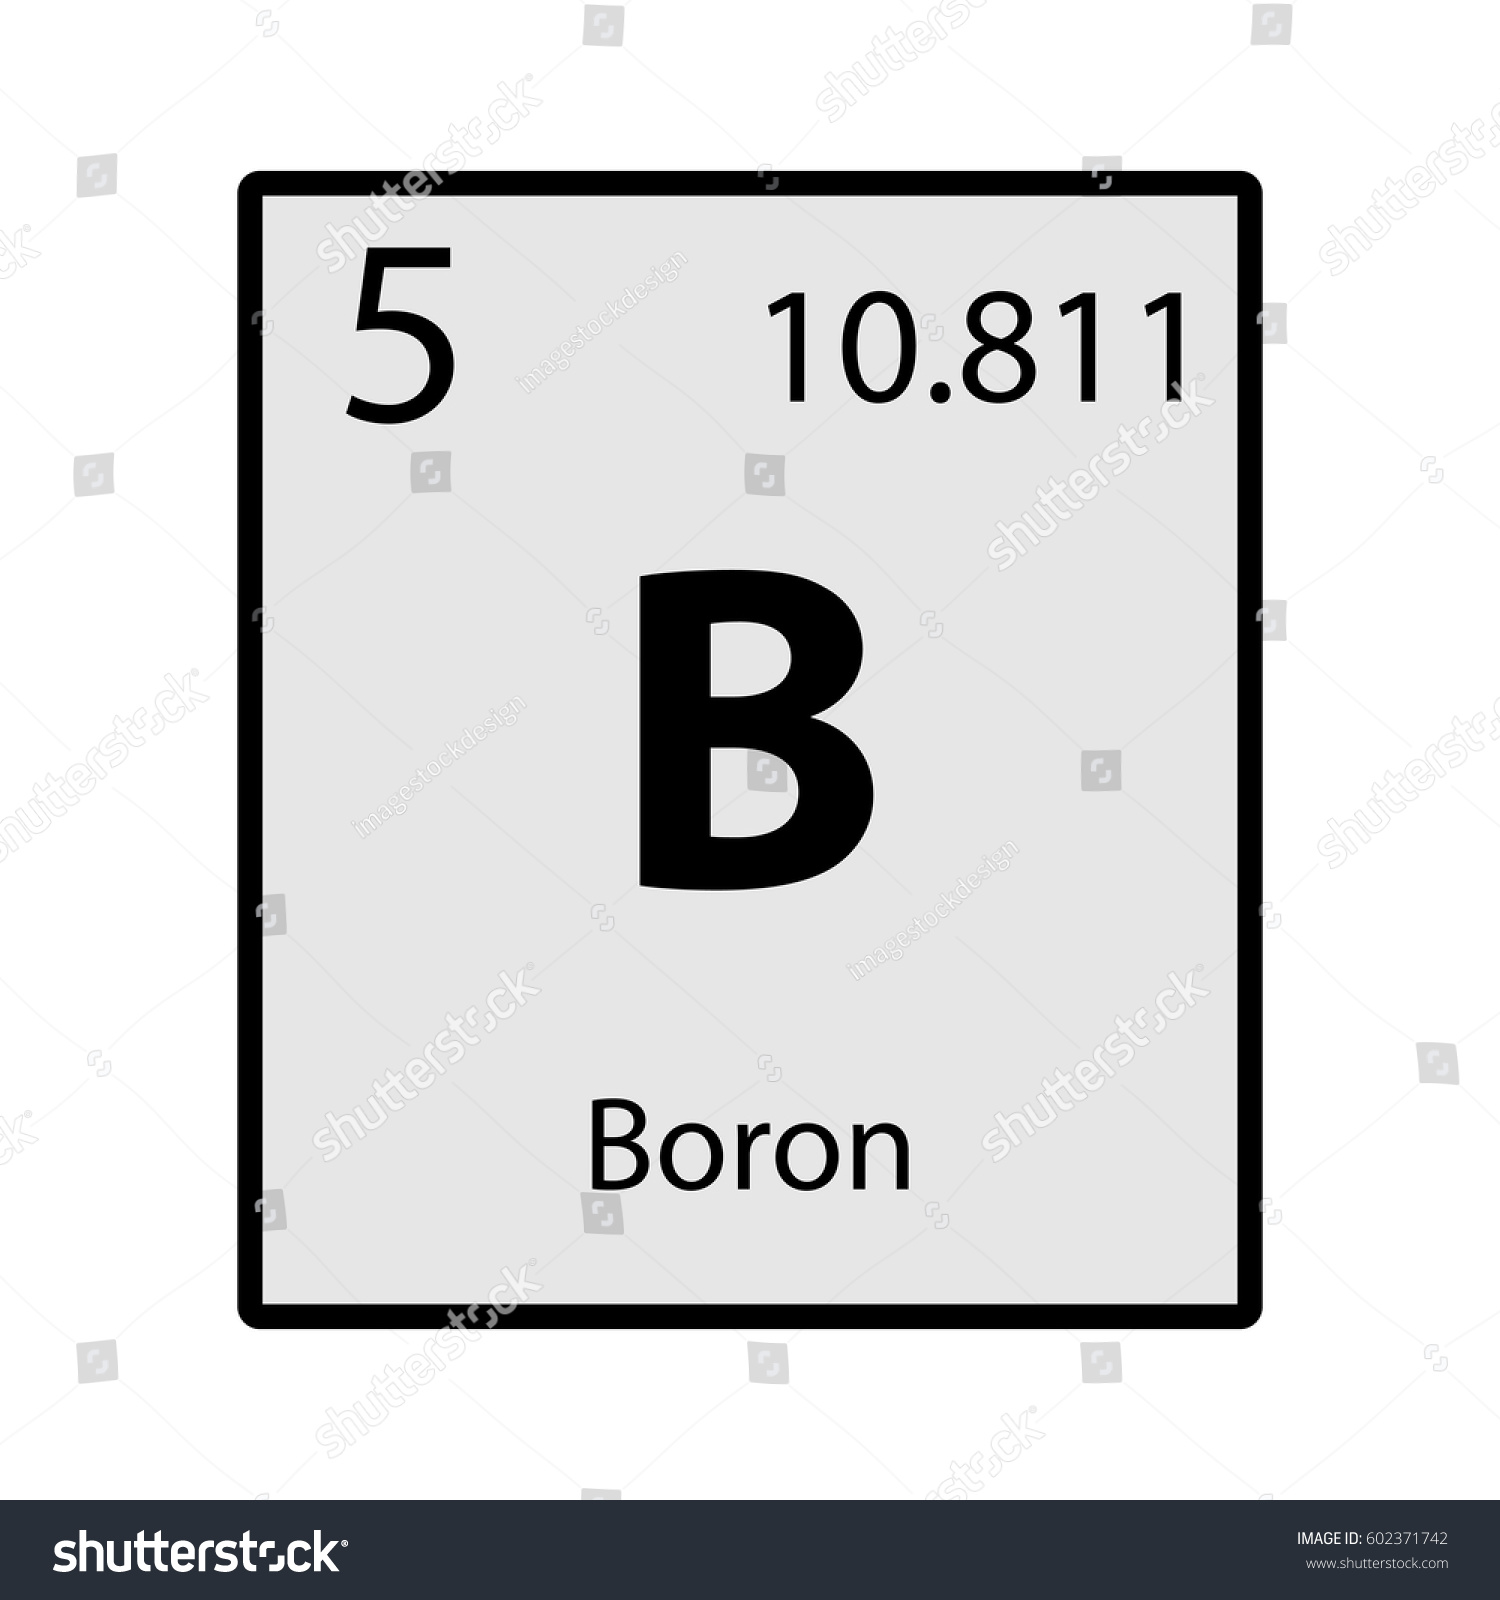 Boron on periodic table images periodic table images boron on periodic table aviongoldcorp boron periodic table element gray icon stock vector 602371742 gamestrikefo images gamestrikefo Image collections